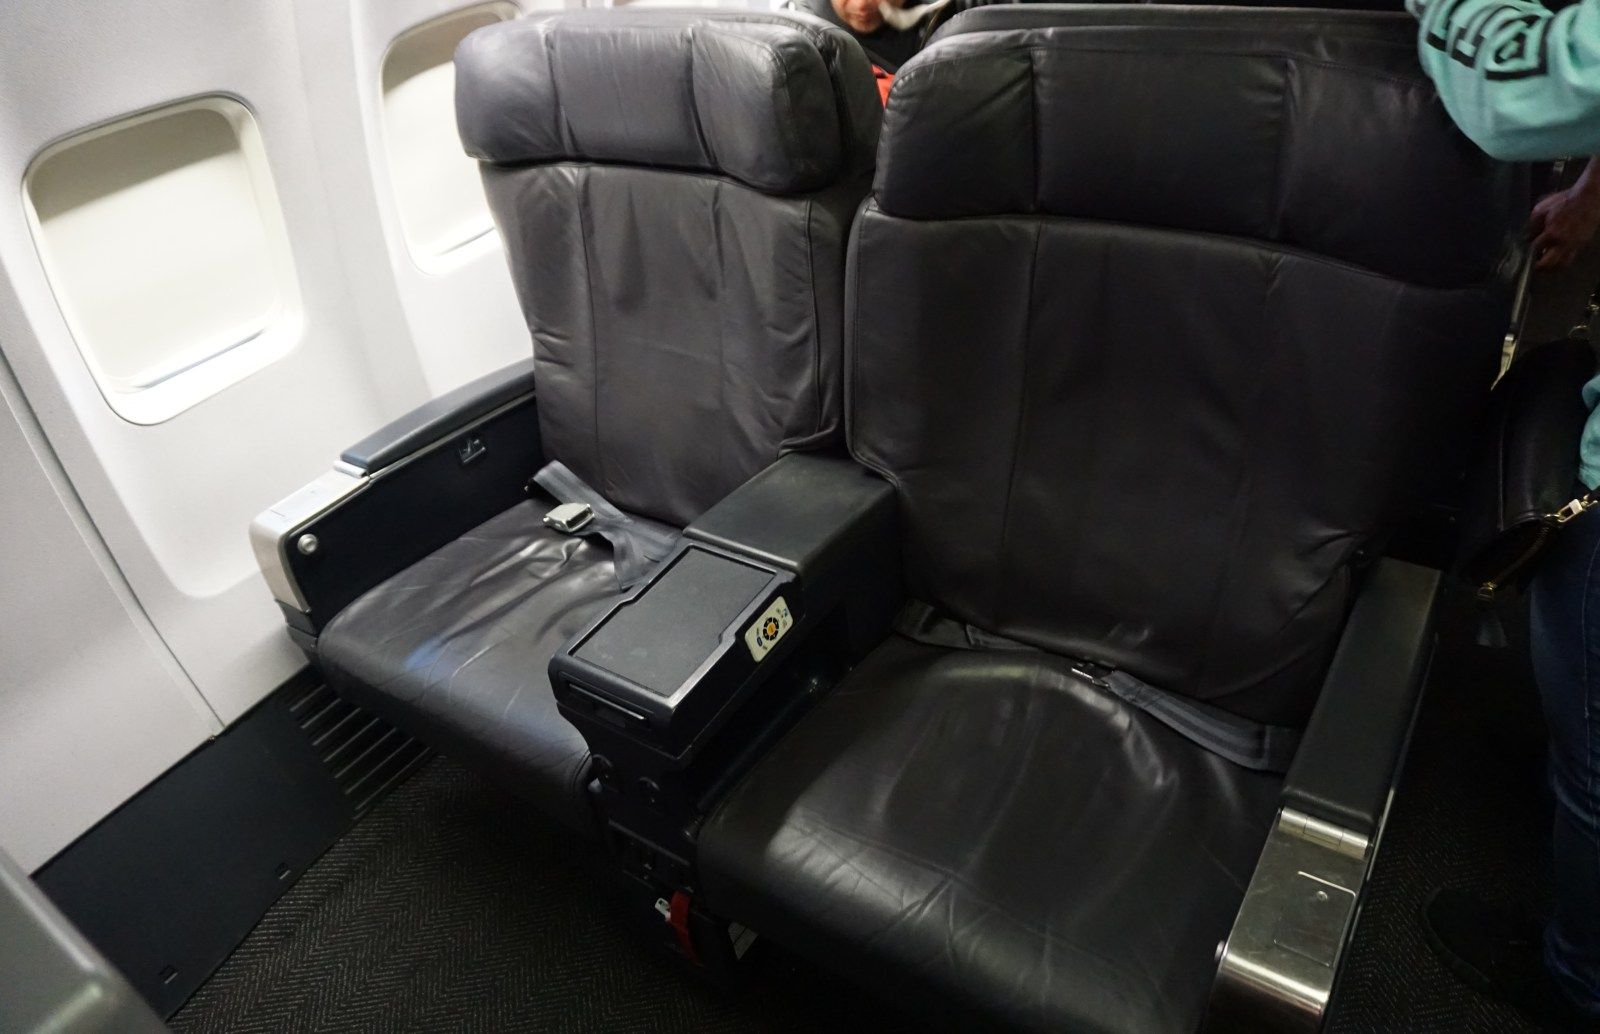 Review Of United Airlines 737 900 First Class Dallas To Houston United Airlines The Unit First Class